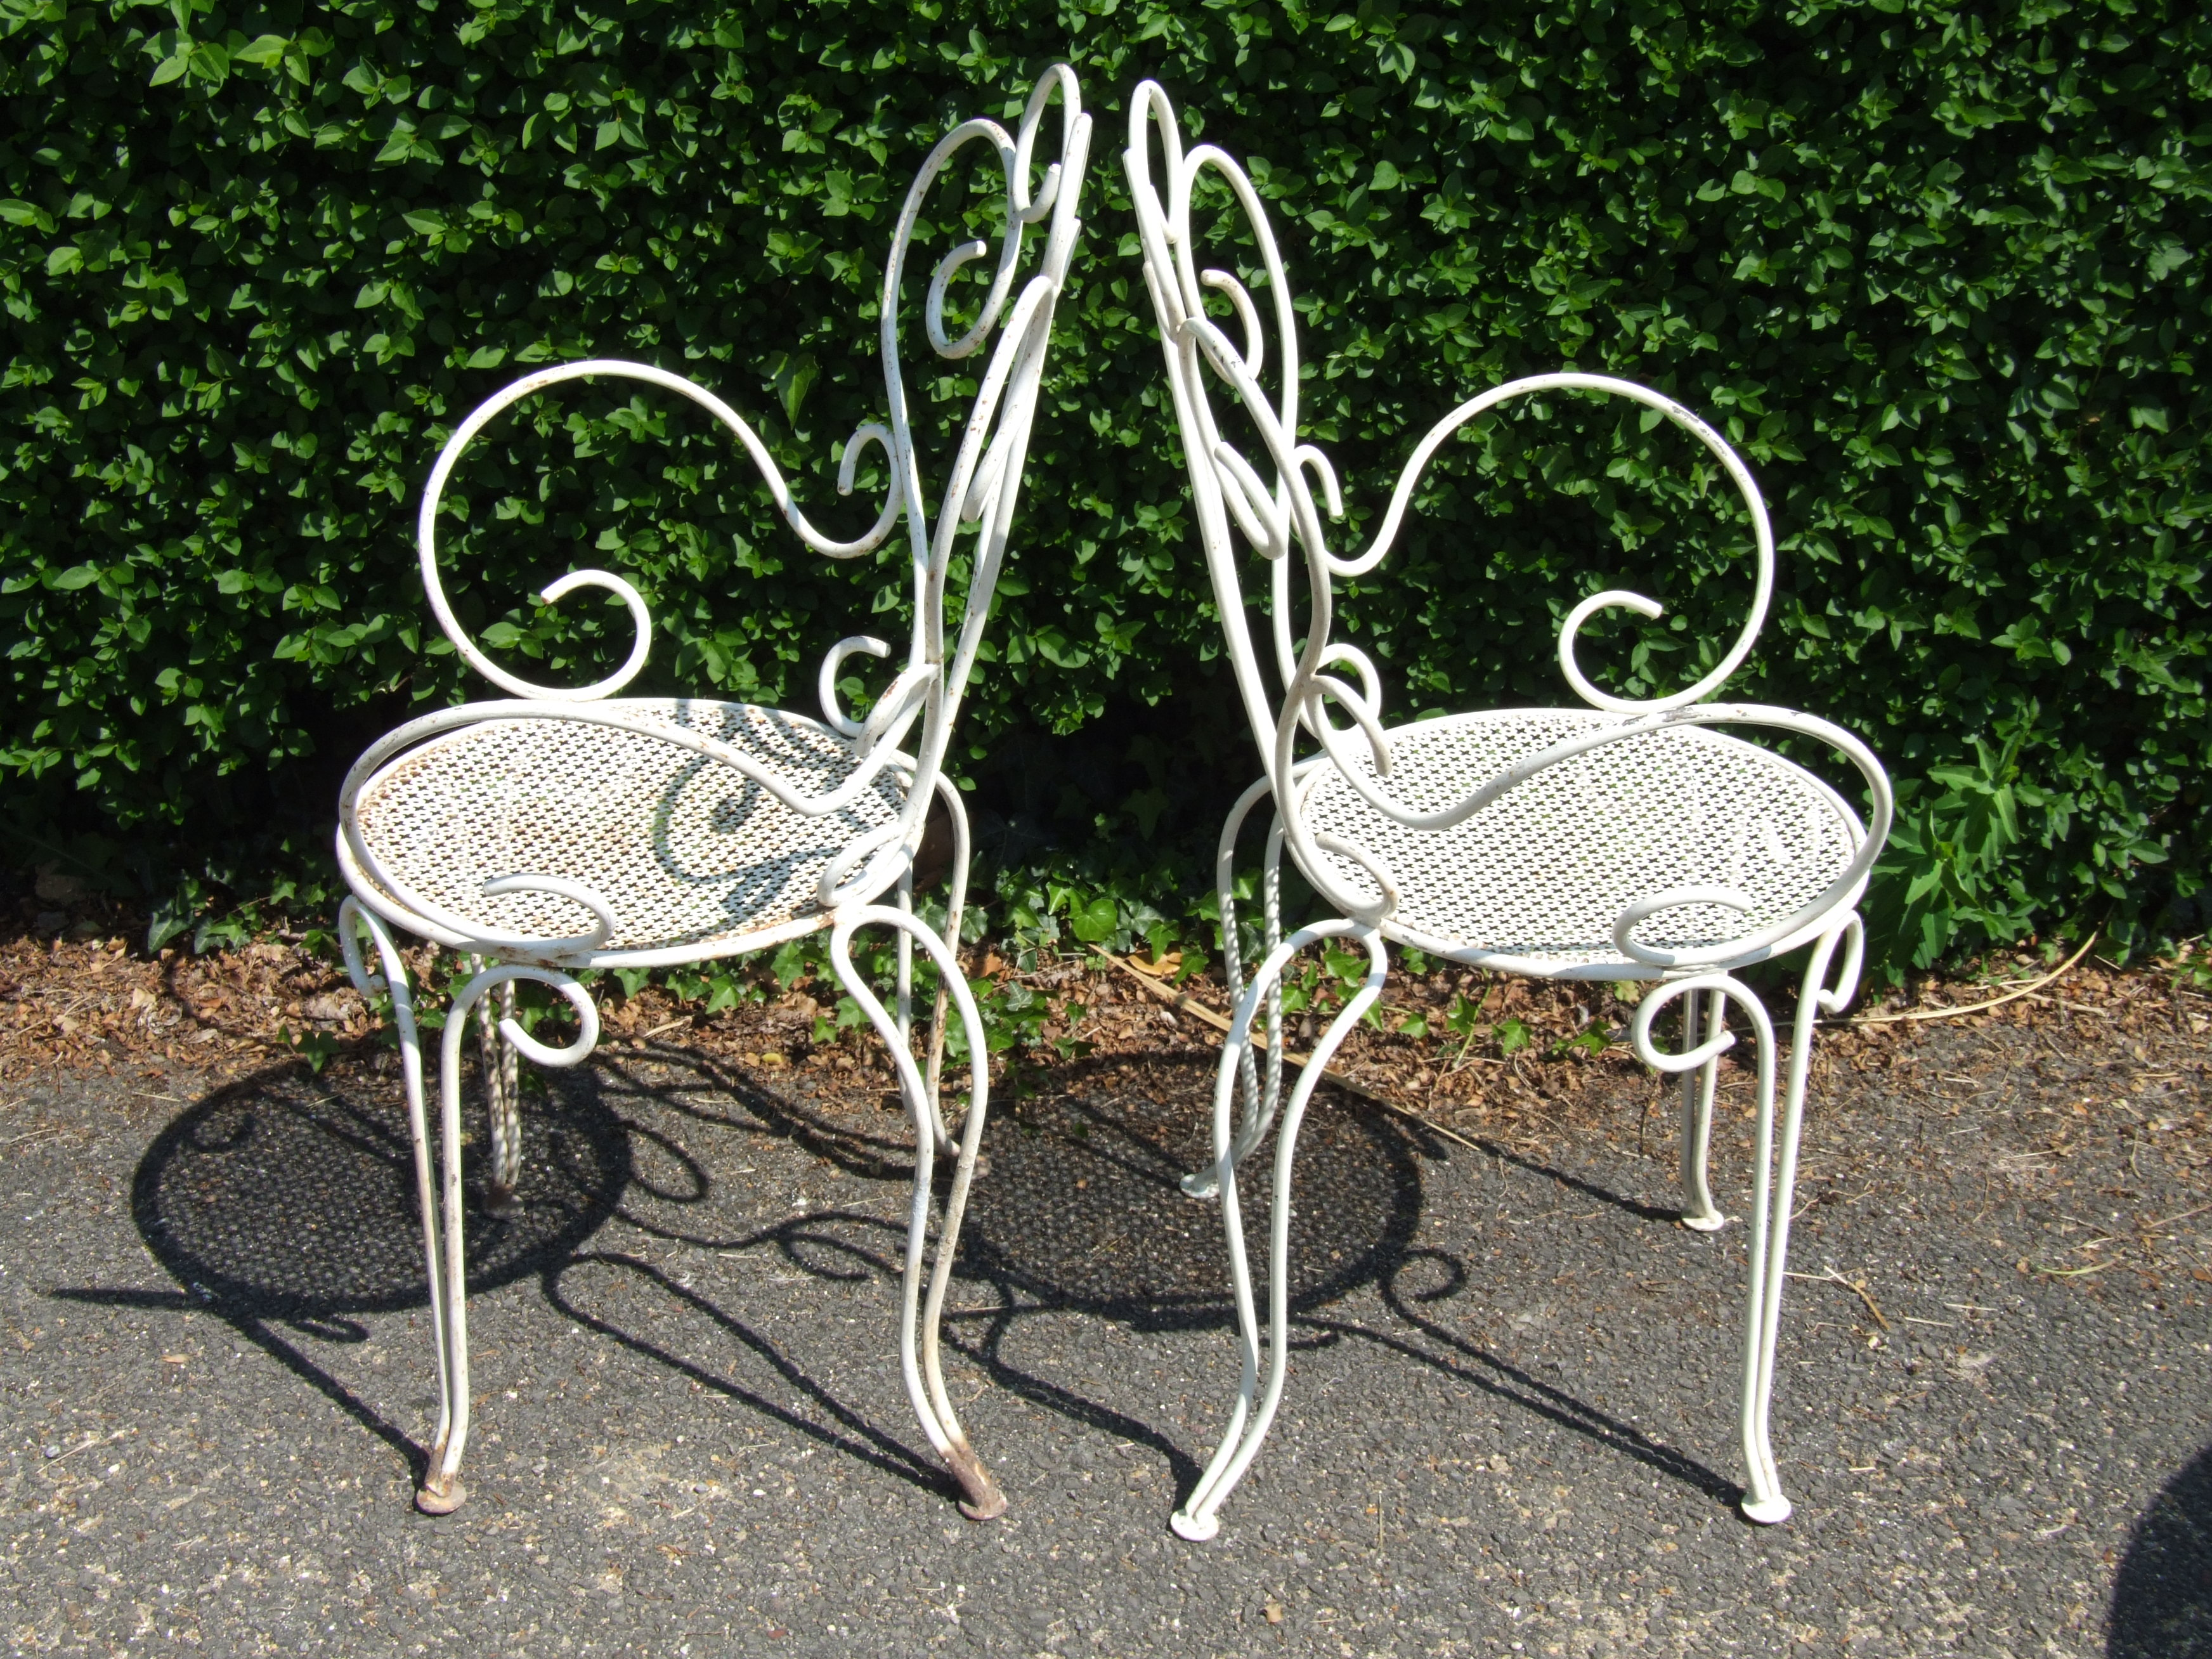 G099 S Pair Vintage French Wrought Iron Garden Patio Chairs La Belle Ét